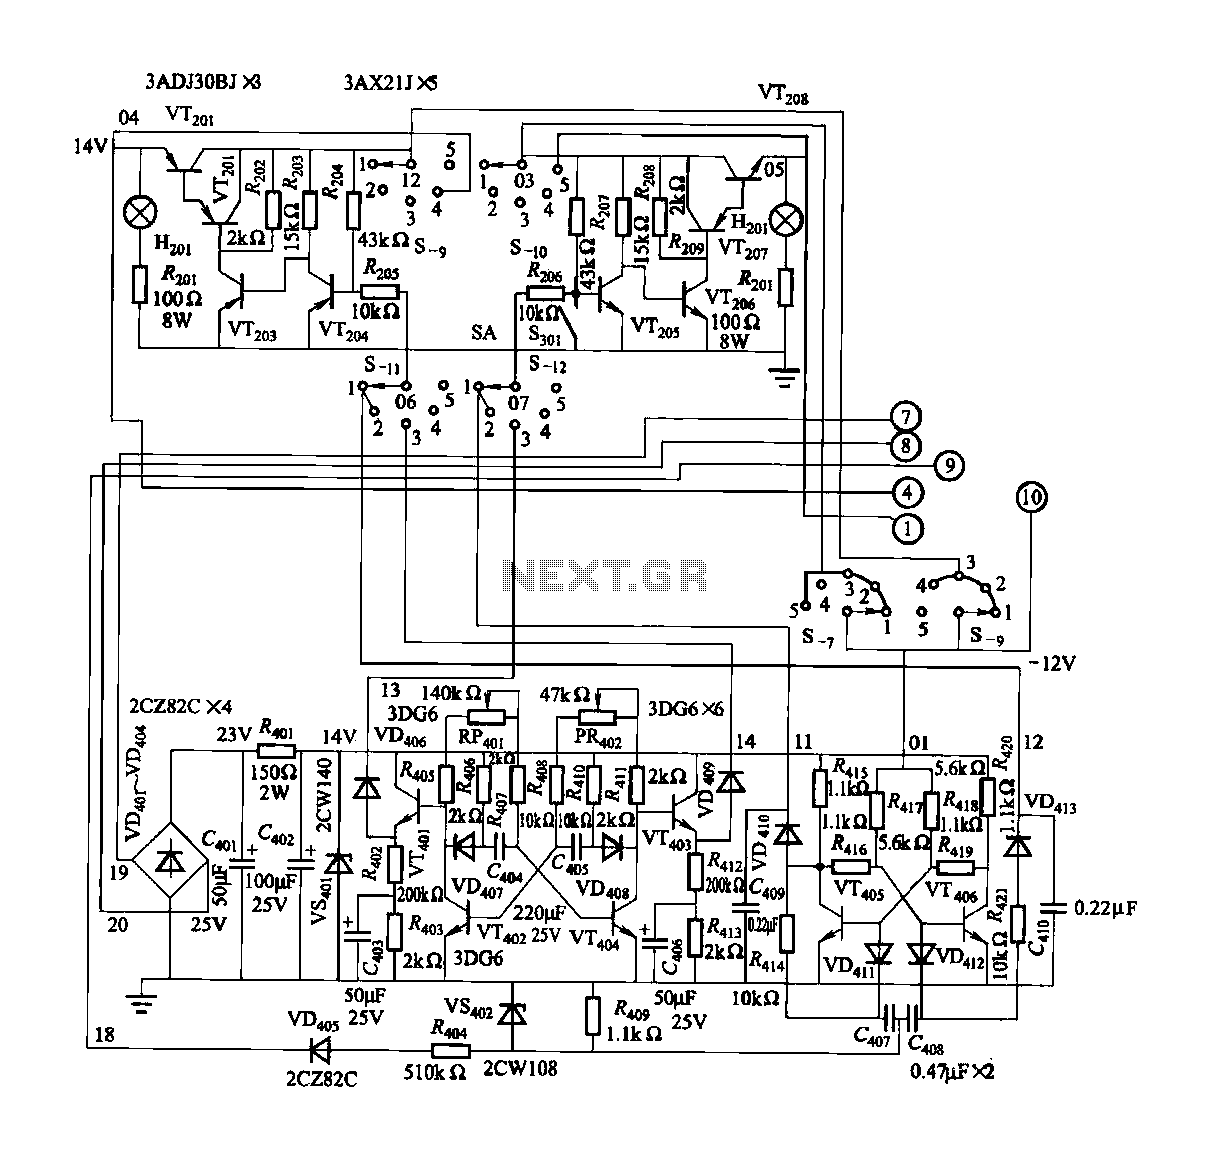 3 Phase Automatic Transfer Switch Diagram